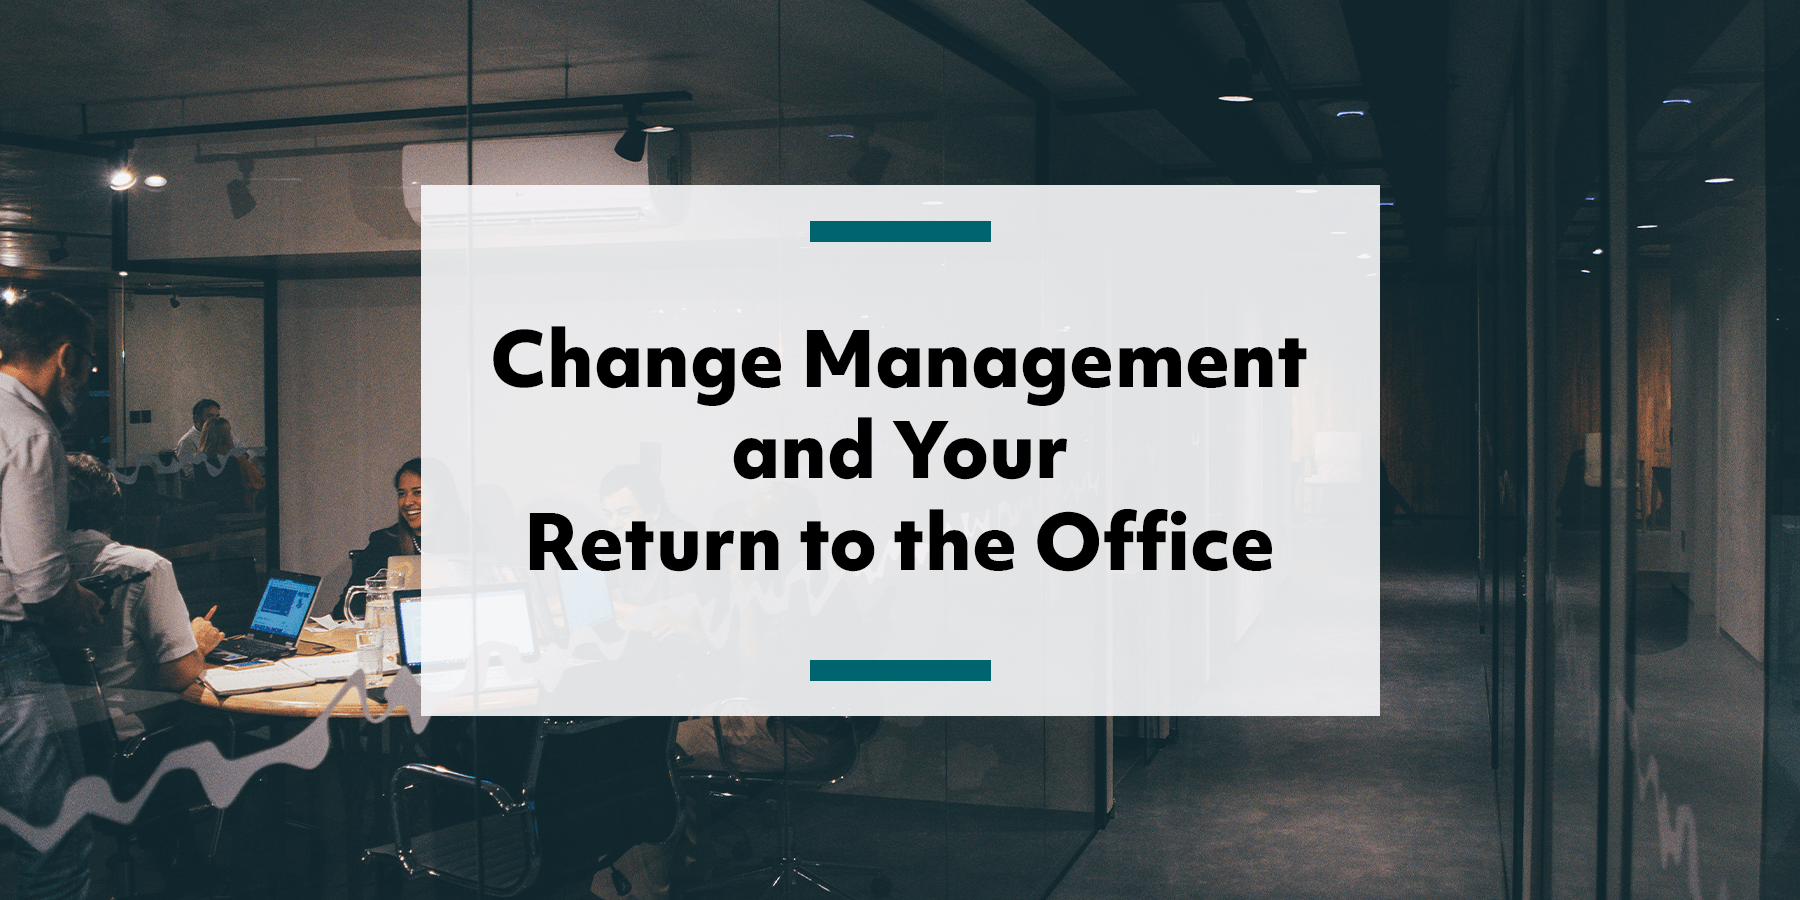 Feature image for change management and returning to the office